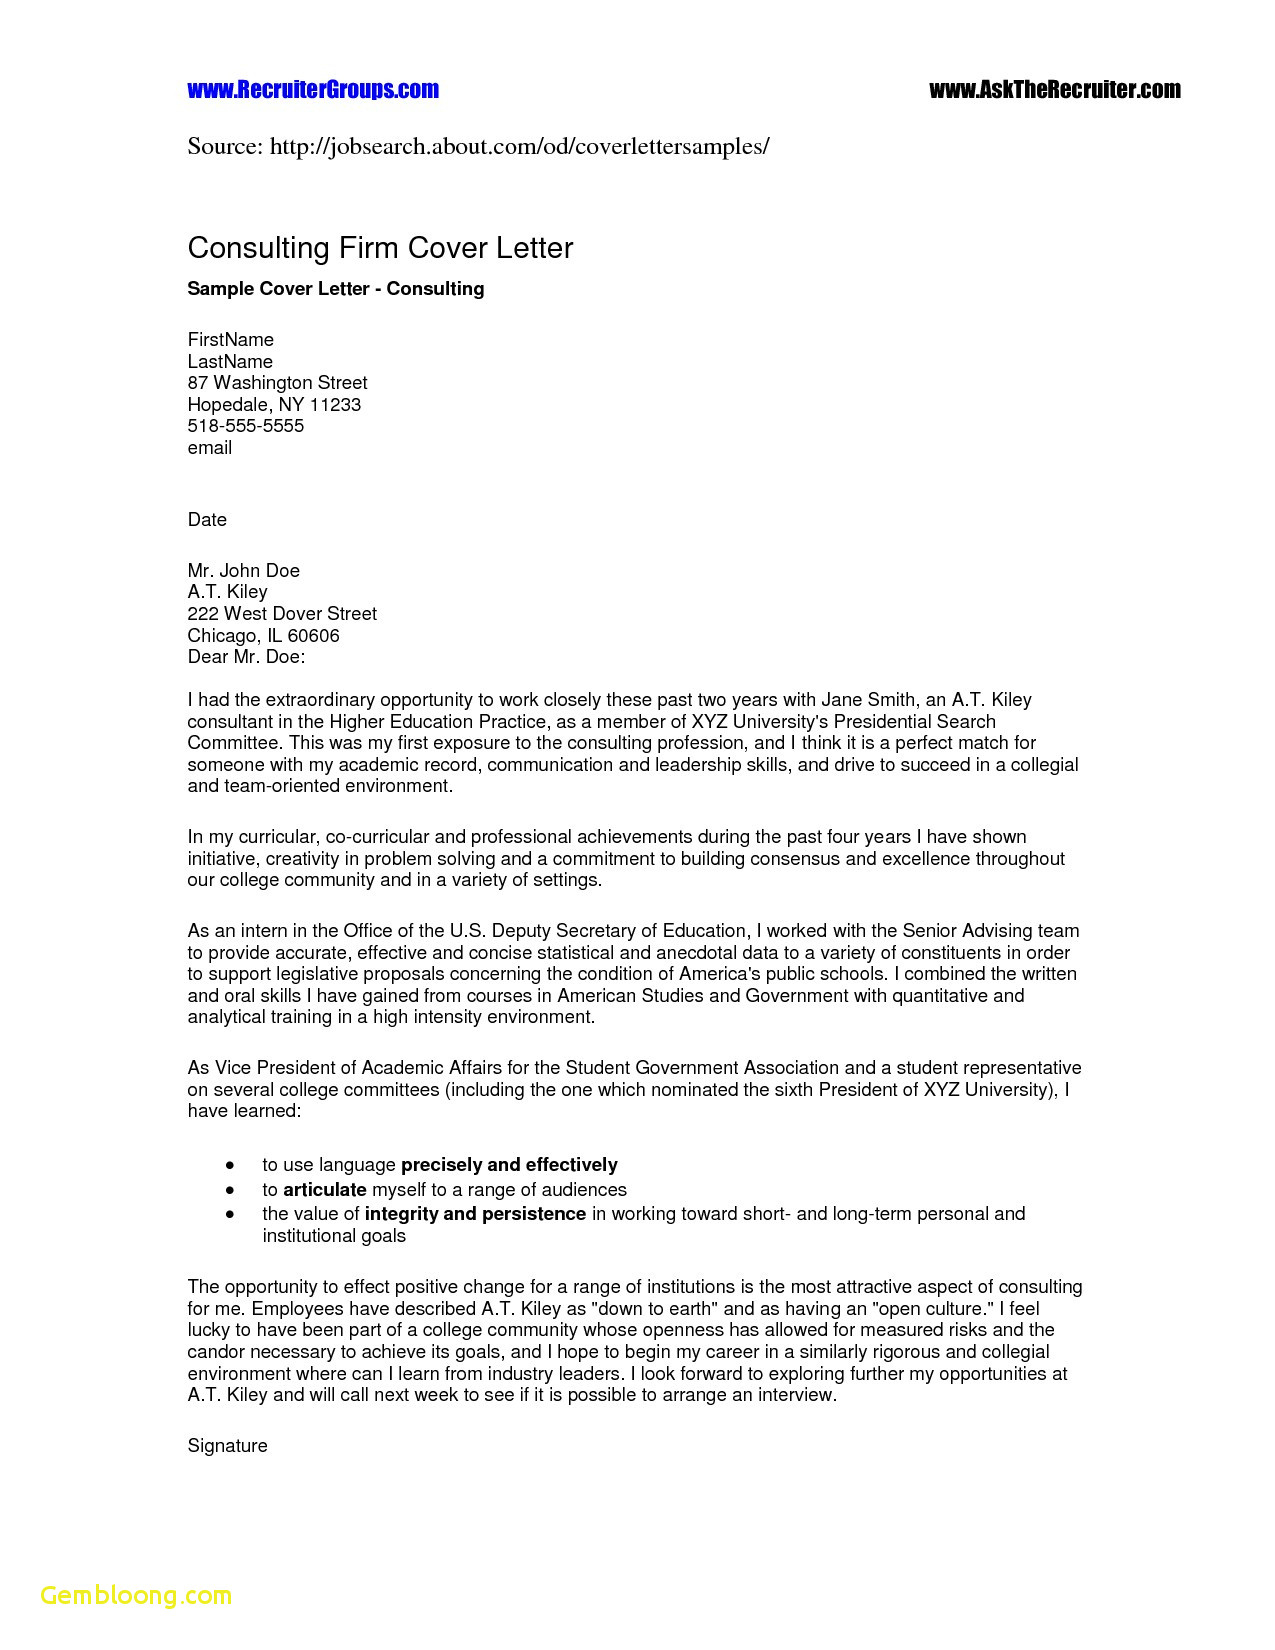 Cover Letter Template Free Download - Students Resume Templates Free Download First Job Resume Templates